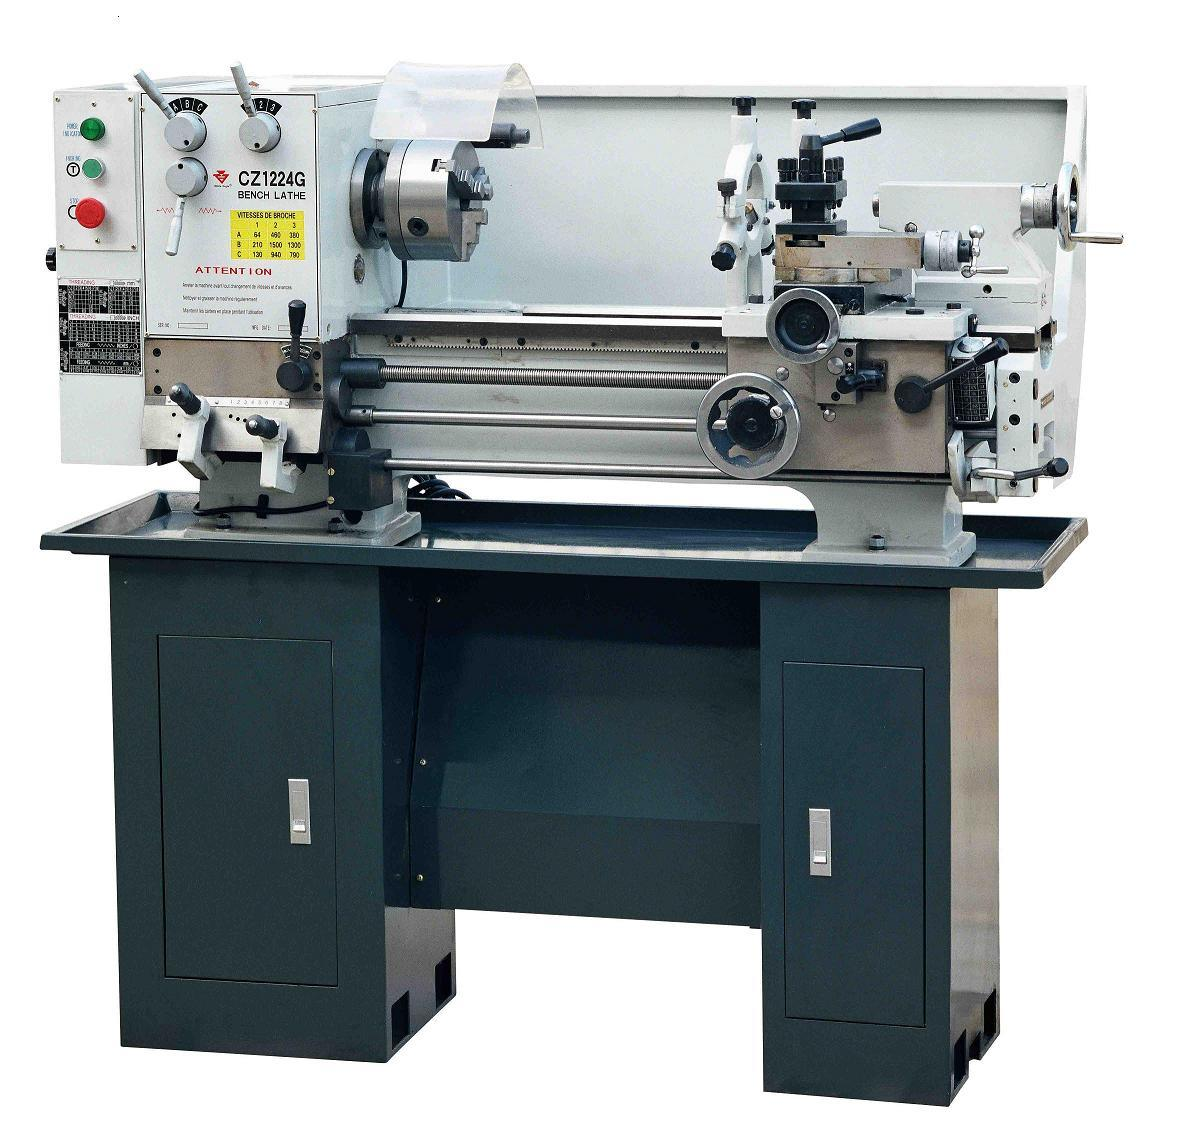 China Bench Lathe Cz1224g Cz1237g Photos Pictures Made In